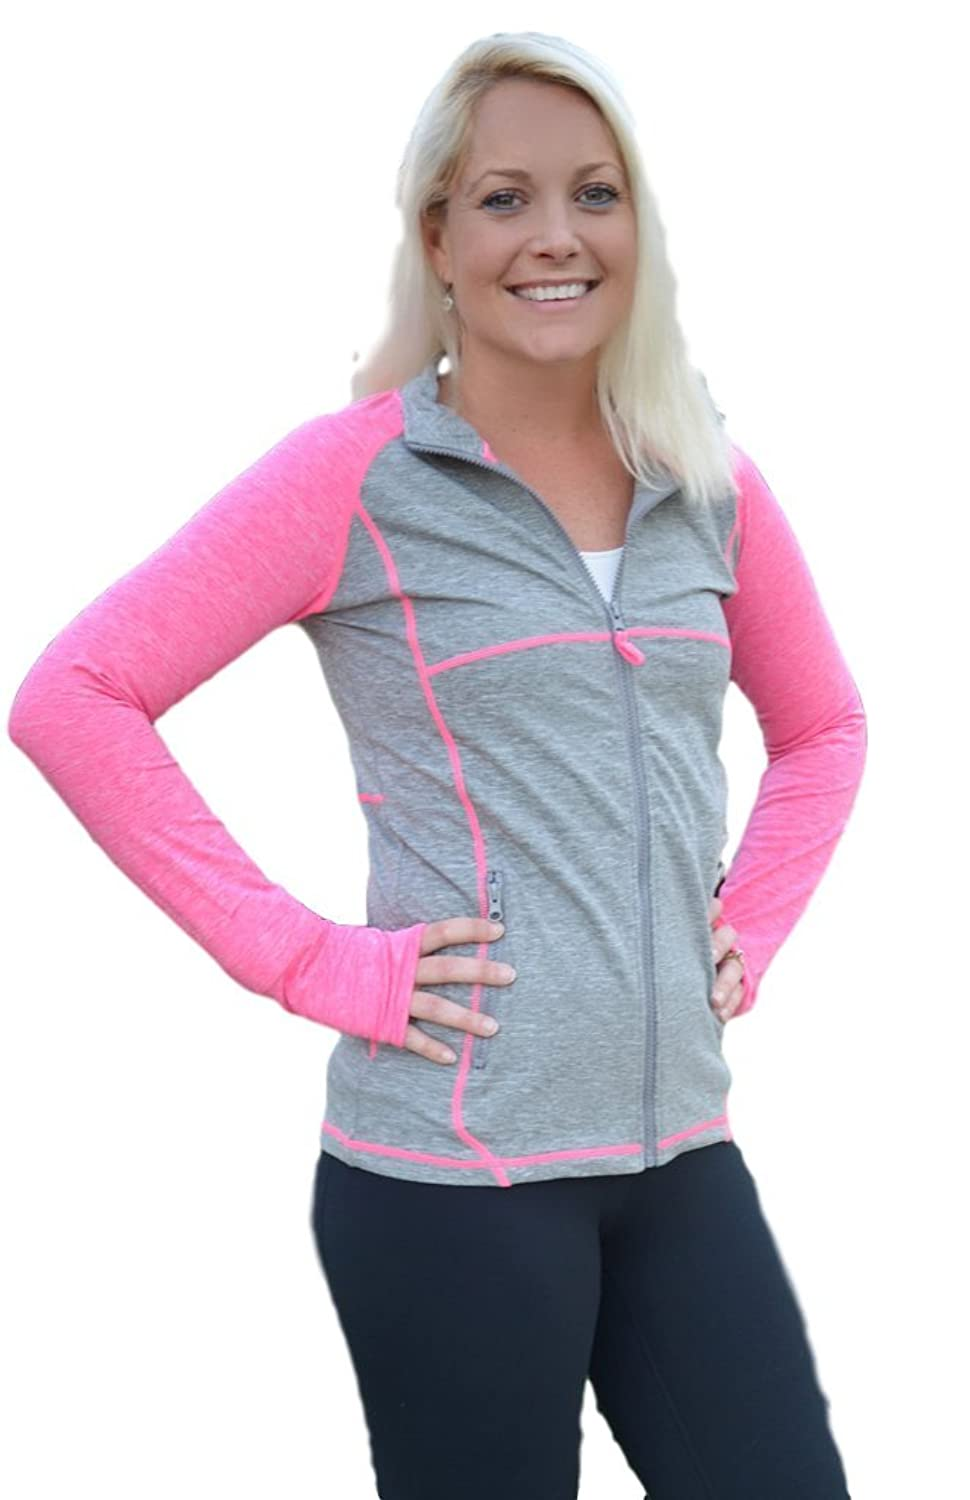 0b12e0d621 My Soxy Feet Women s Lightweight Athletic Jacket - Full Zip Pink Sports  Jacket With Thumbholes and Zip Pockets